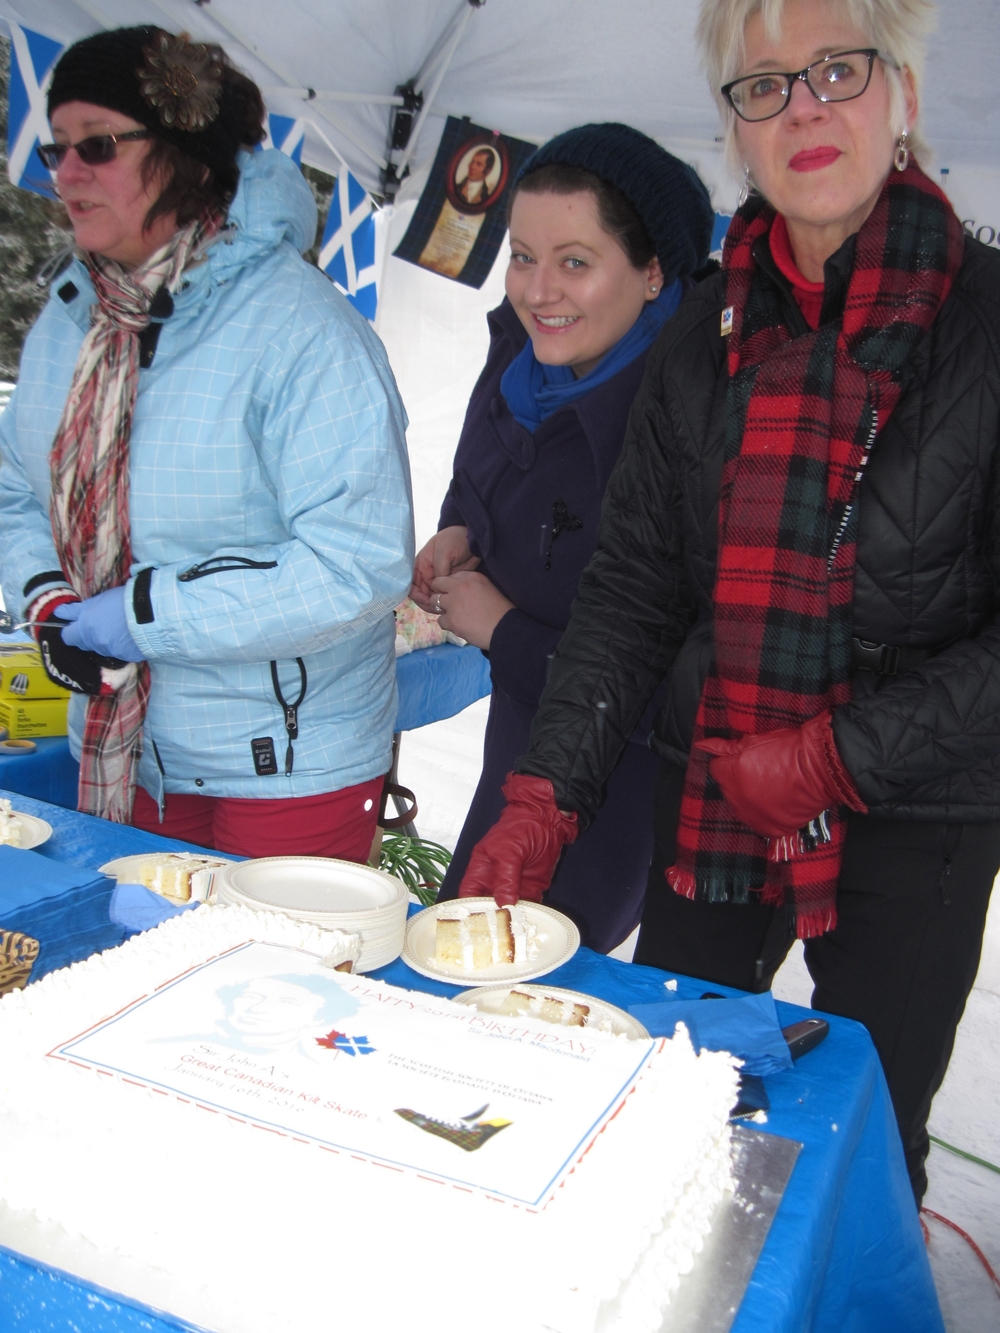 Meanwhile, with Sue MacGregor, Sabrina Sotiriu, and Janet Detillieux, there's a big demand for hot chocolate and a piece of Sir John A's birthday cake...